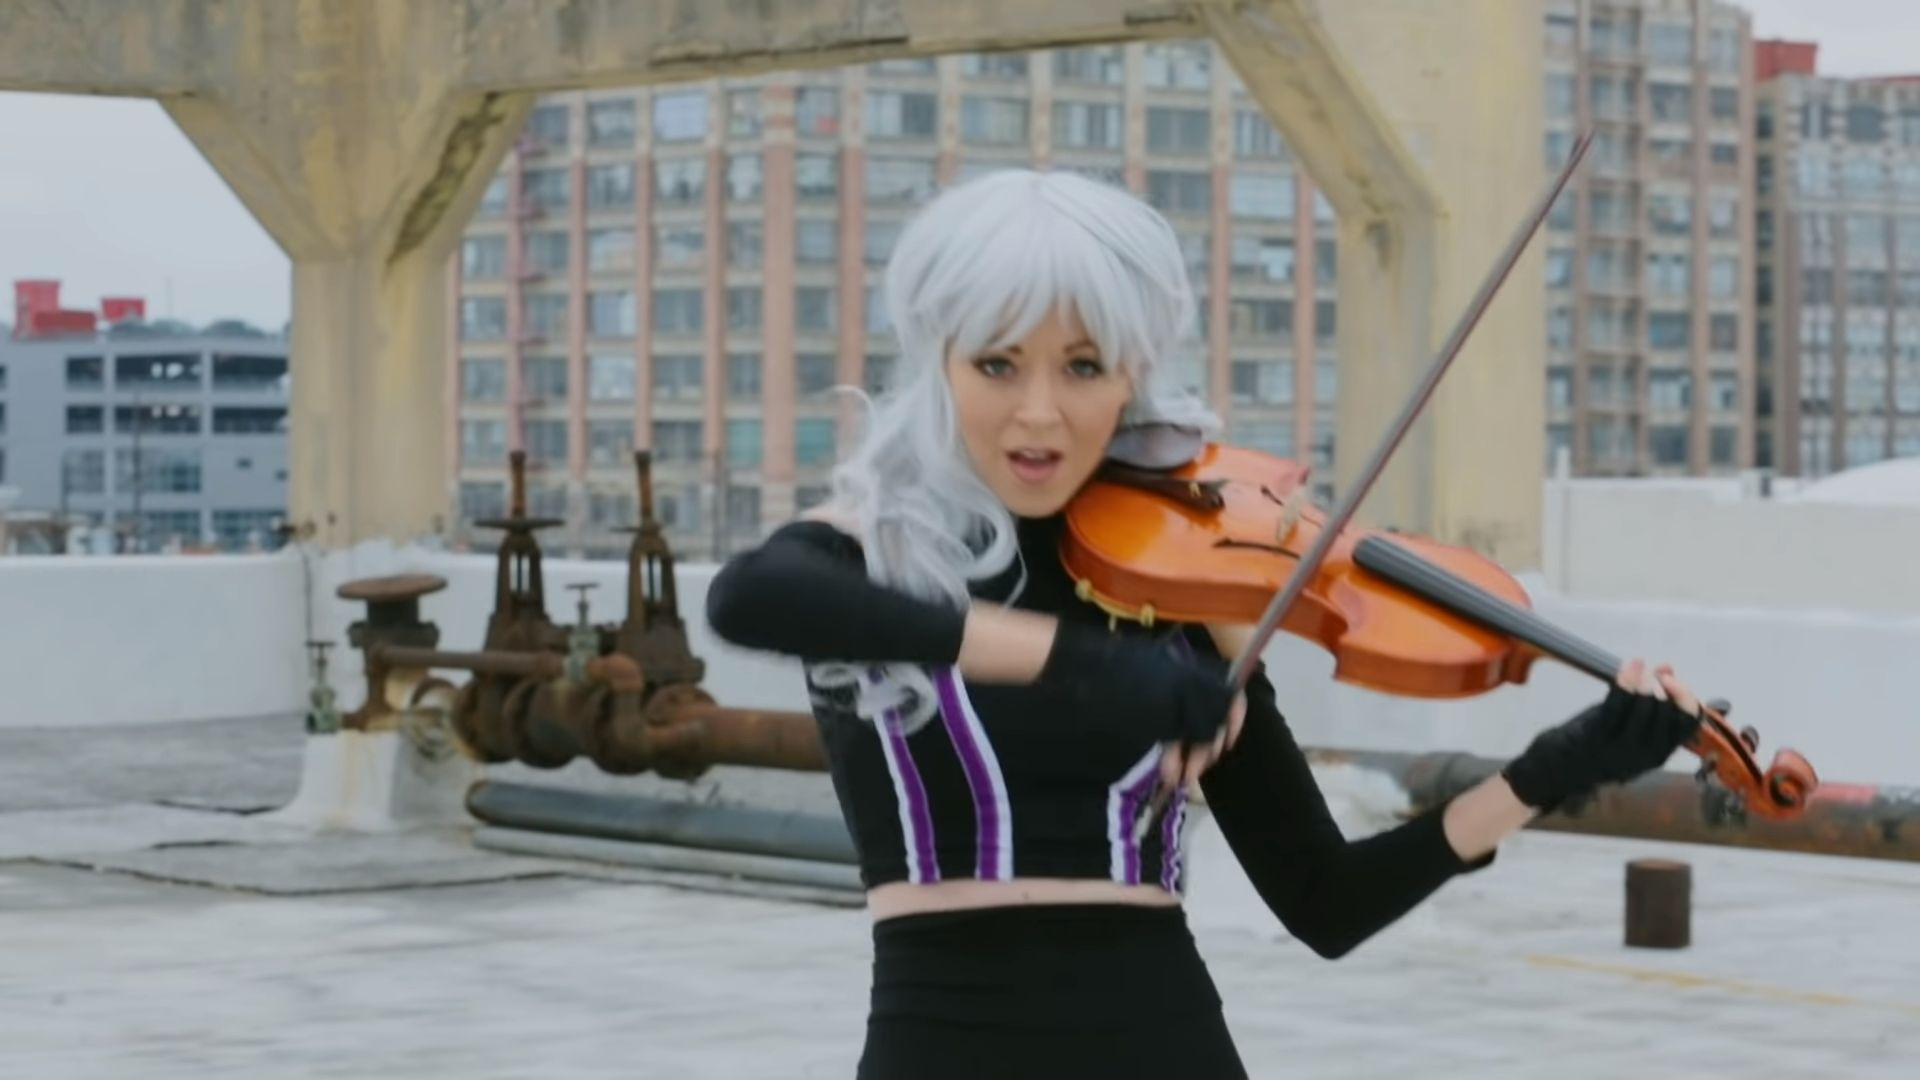 lindsey_stirling_endgame_thrones.jpg